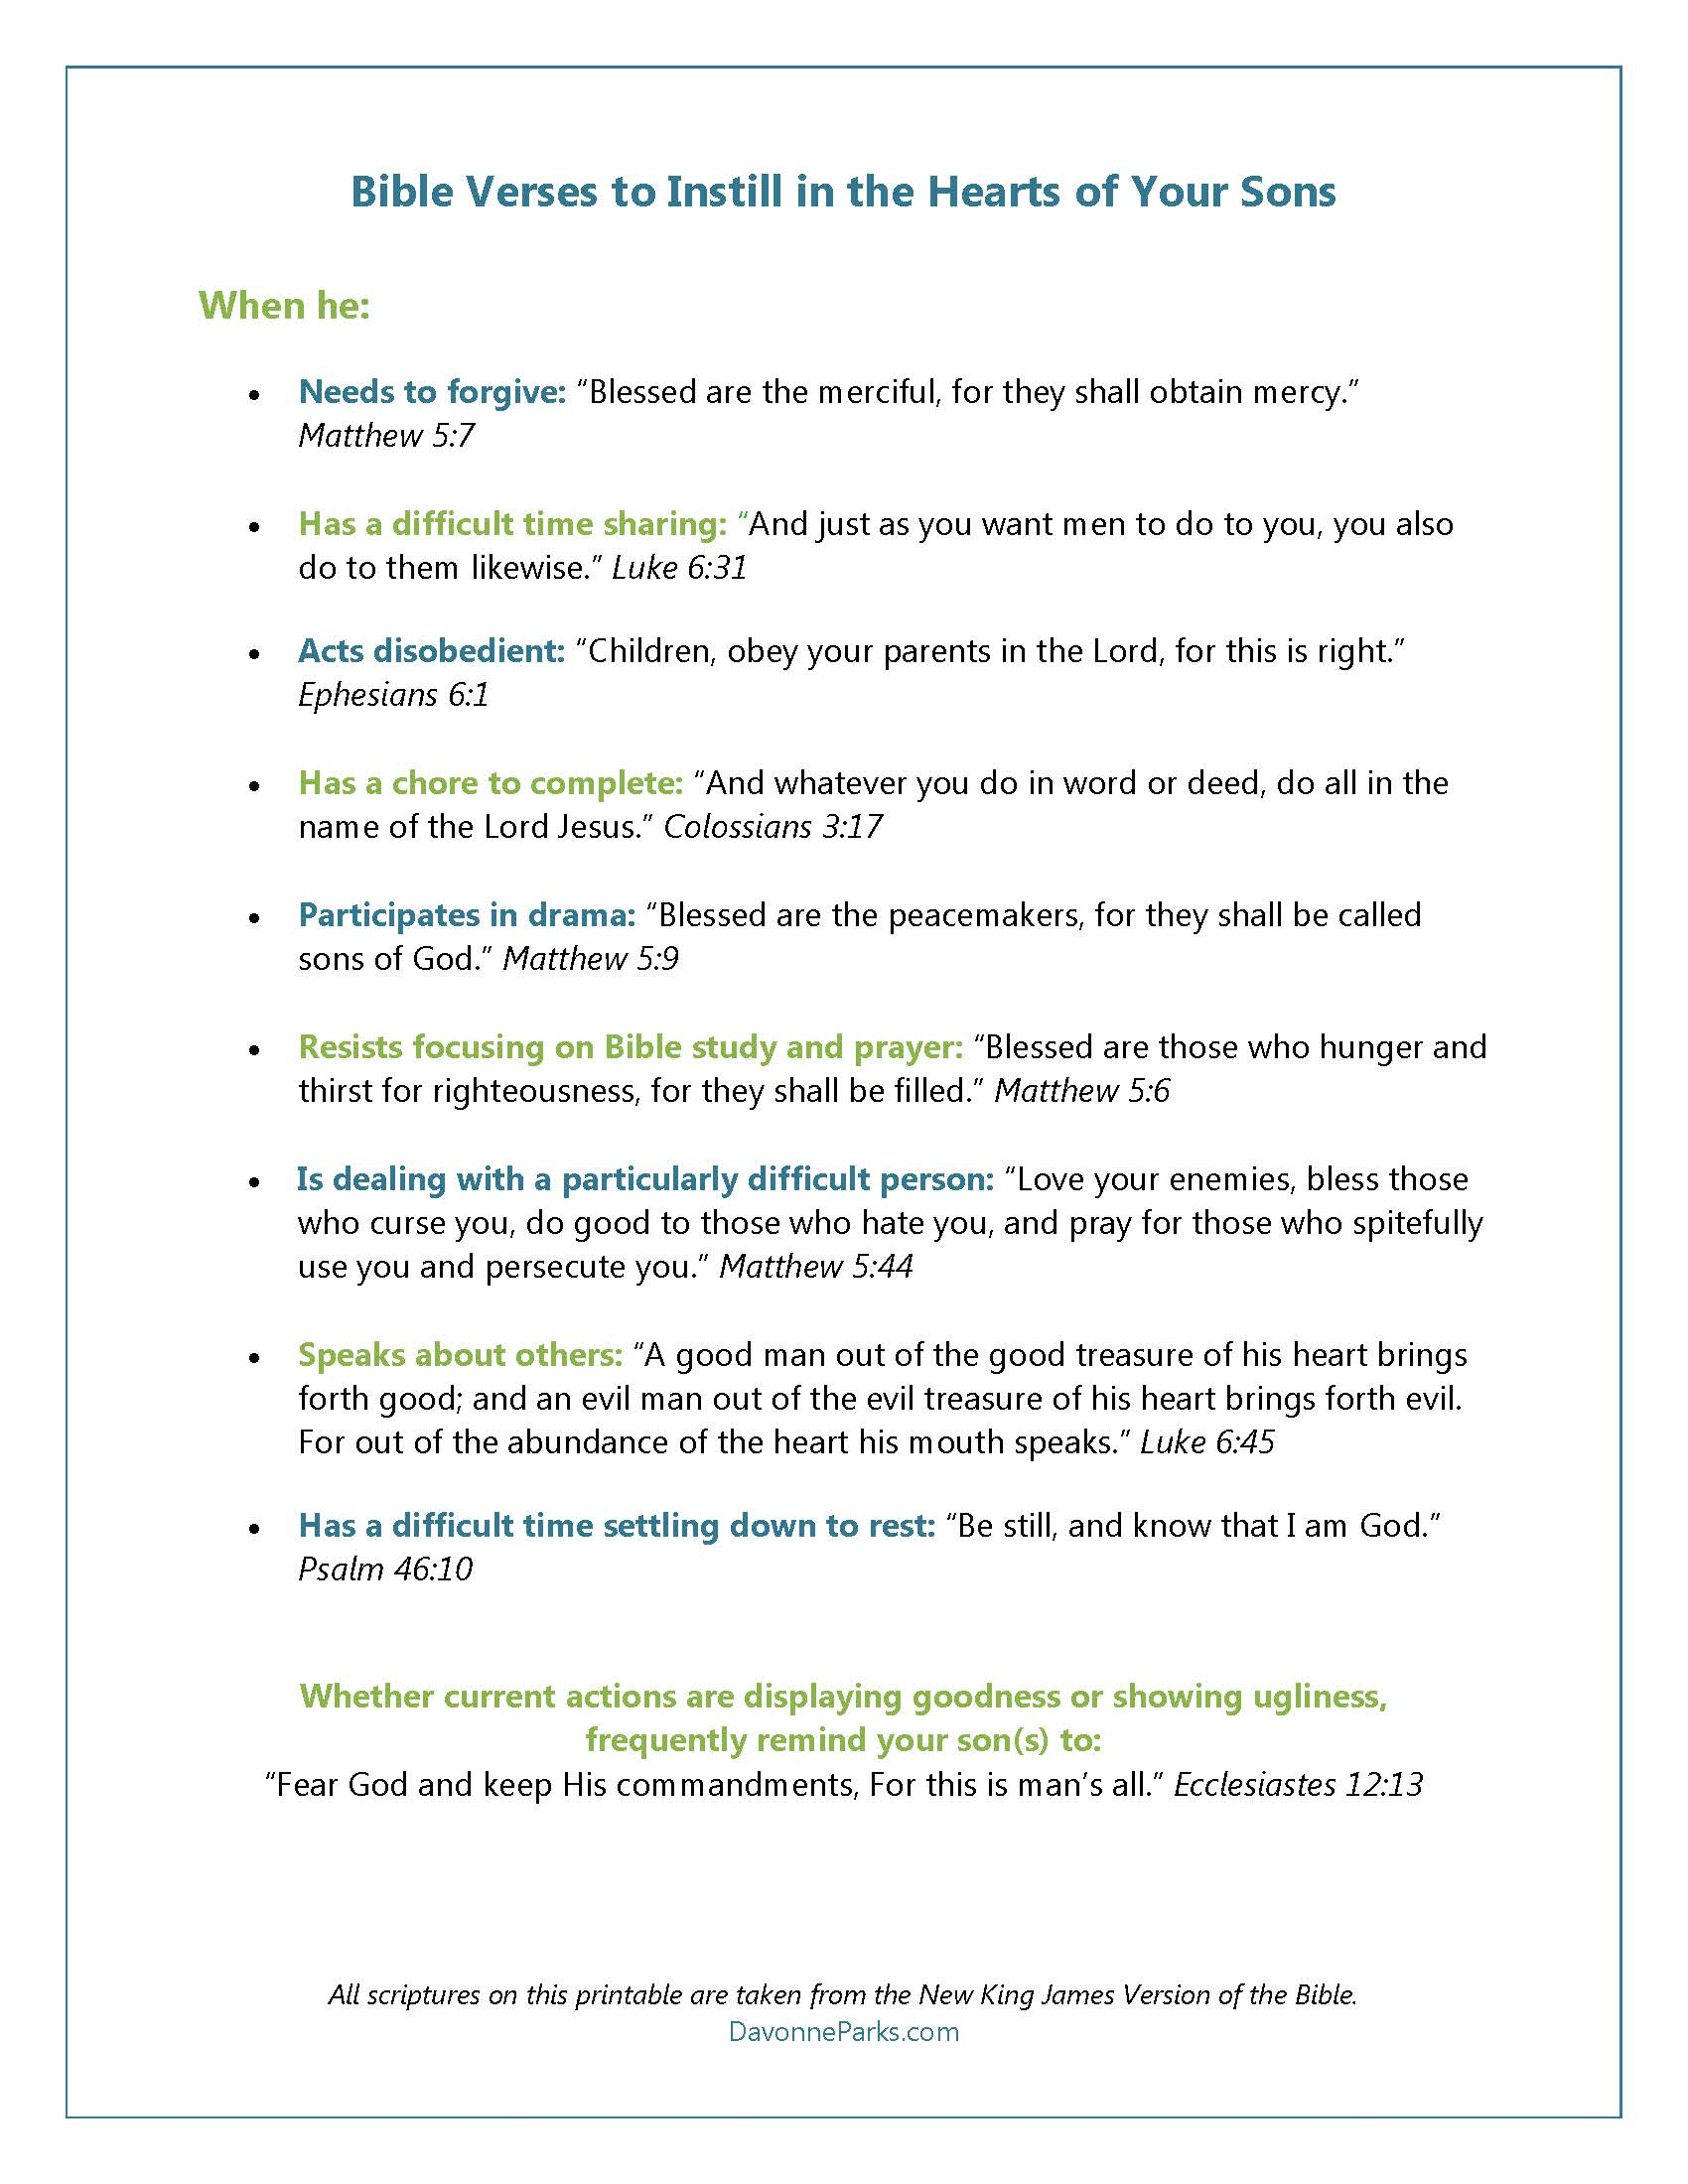 FREE Printable – Bible verses to instill in the hearts of our children